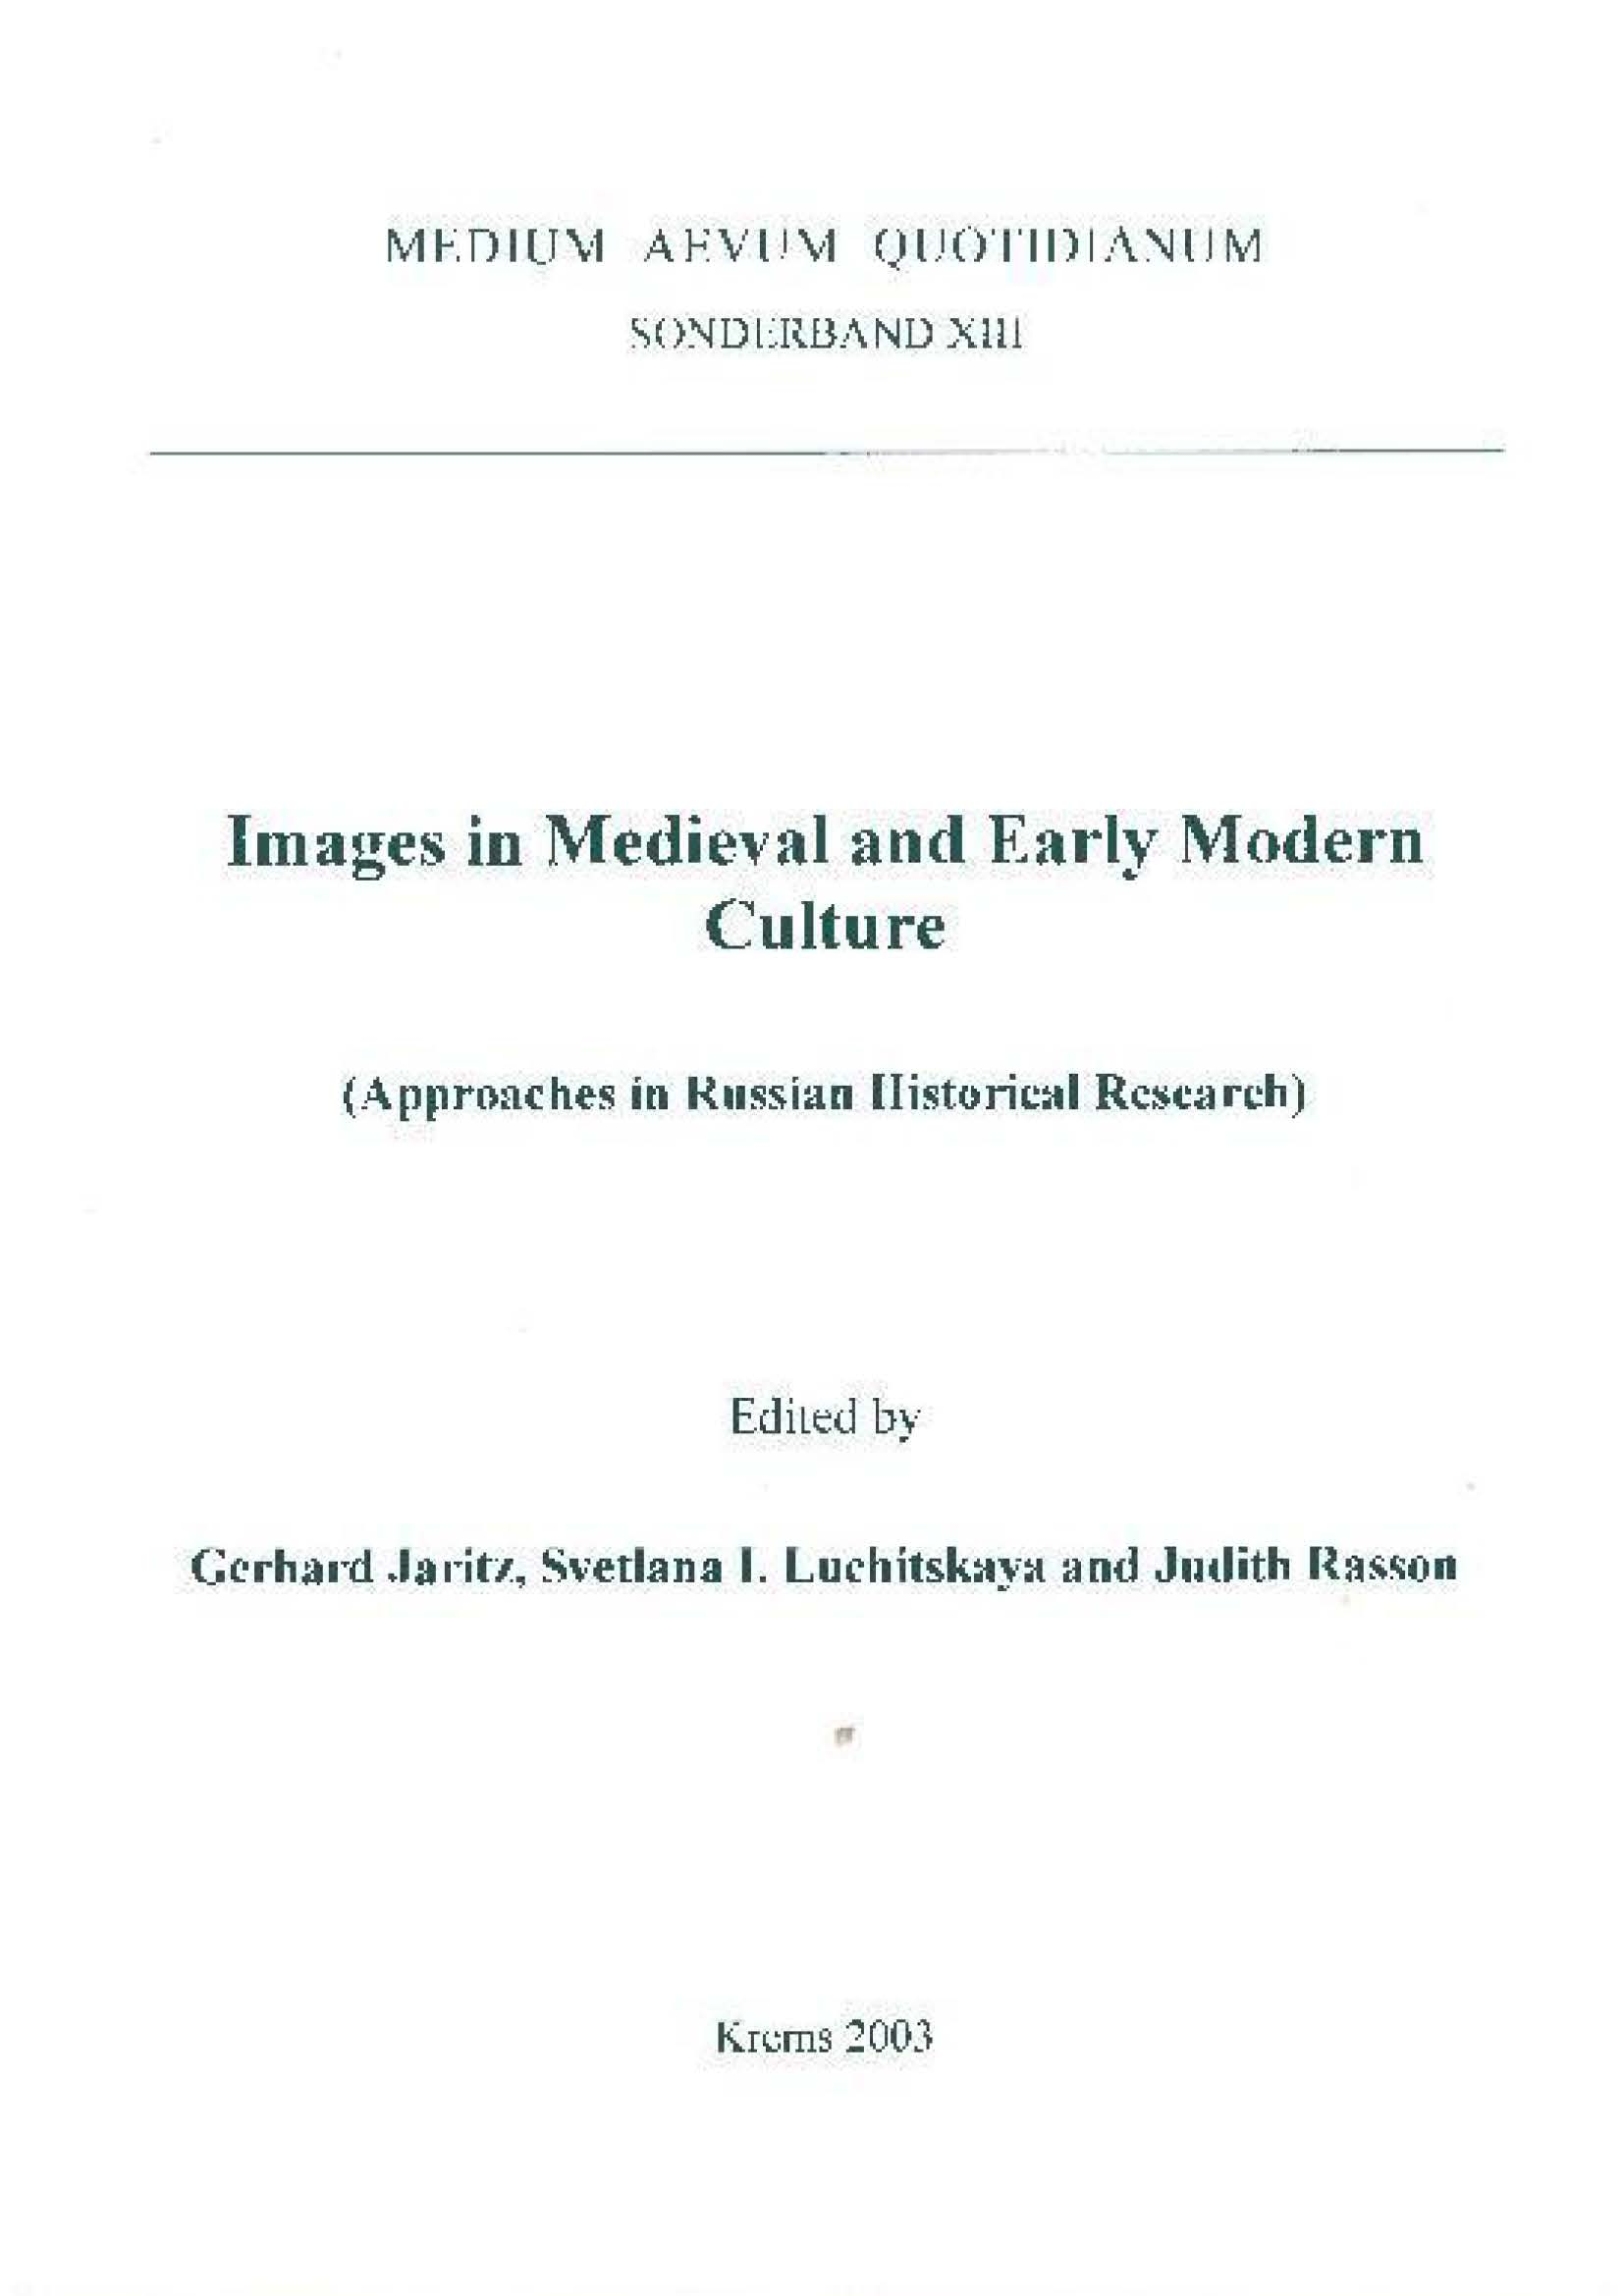 Images in Medieval and Early Modern Culture